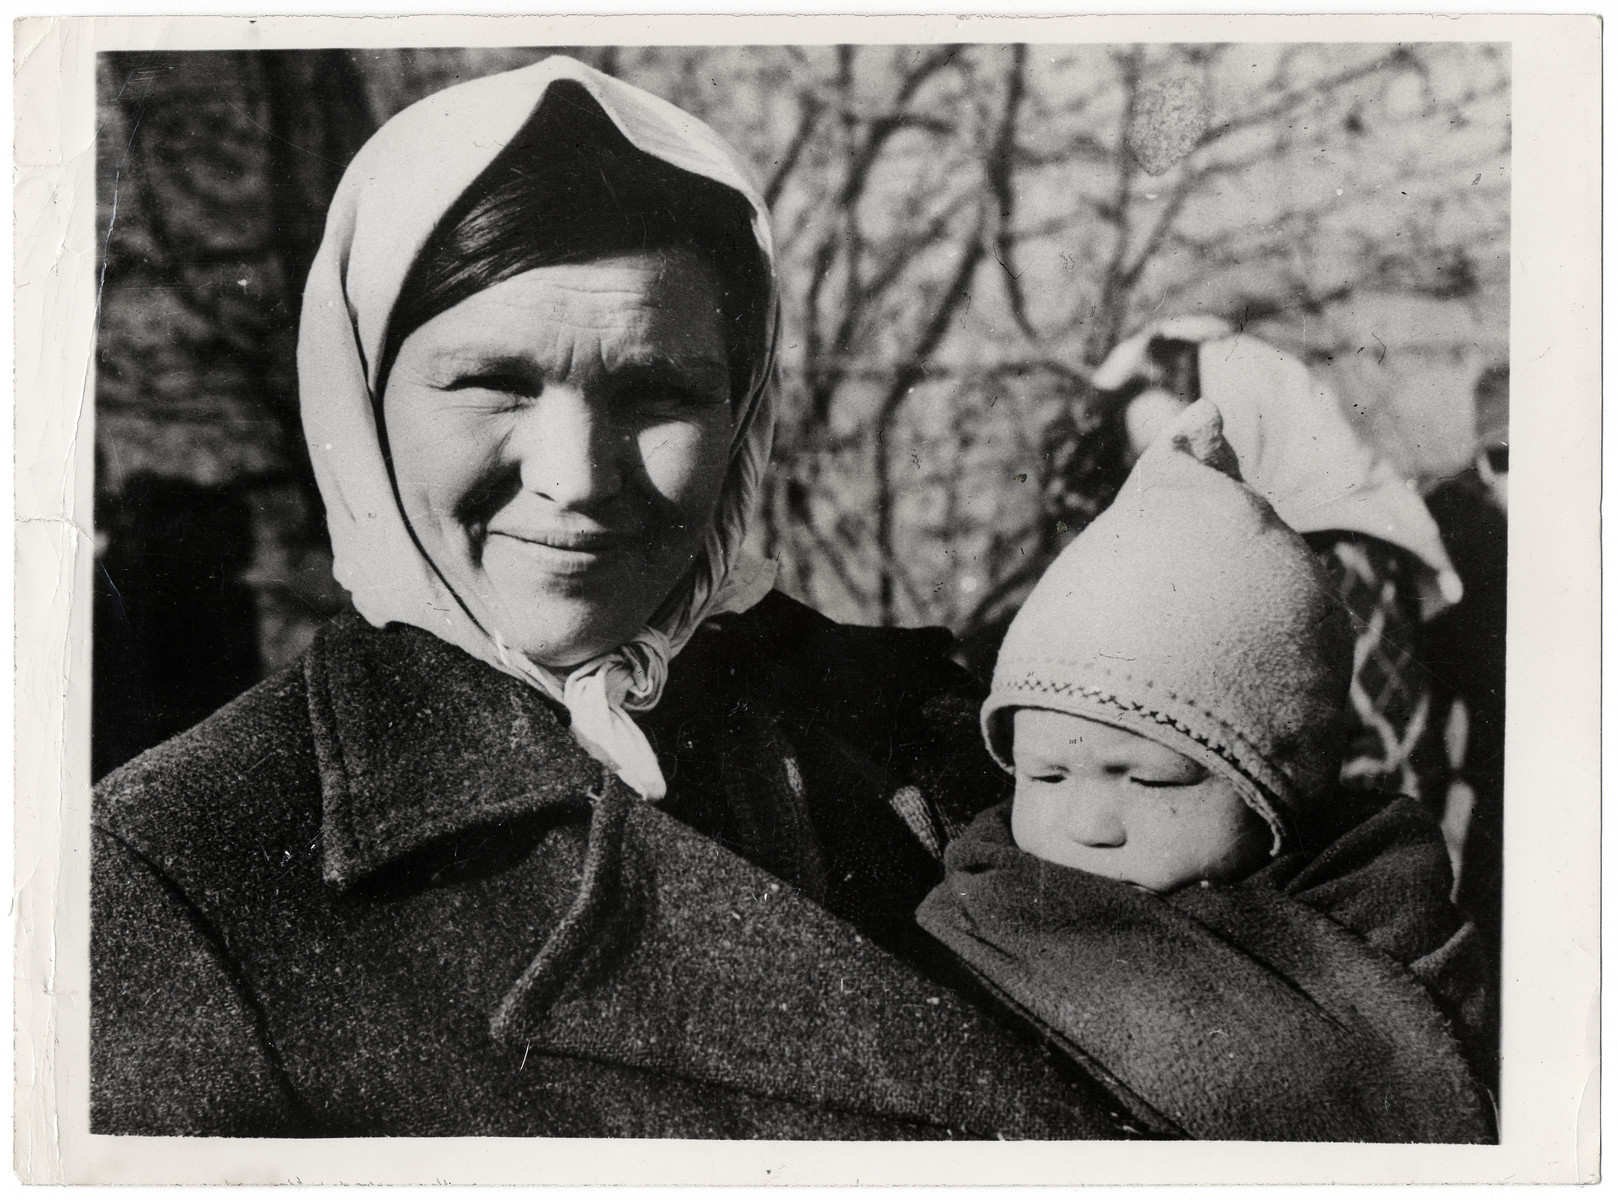 "Close-up portrait of a Russian woman and infant awaiting repatriation.  Original Caption: ""As Allied armies on the Western Front sweep eastward across the Reich, they are freeing tens of thousands of foreign workers from Nazi slave labor camps. These displaced persons are temporarily placed in repatiation camps until they can be transported to their homelands by the Allies. At the camps, they are carefully questioned to make sure they are not German soldiers disguised as civilians. At one displaced persons center, 28 out of 3,000 men proved to be German troops attempting to flee into Belgium and Holland.  By March 19, 1945, freed French slave workers were arriving in Paris at the rate of 2,000 daily and it was estimated that approximately 2,500,000 French nationals were still inside Germany. Estimates of the total number of foreign workers in the Reich run as high as 20,000,000, most of them being Russians or Poles. U.S. General of the Army Dwight D. Eisenhower, Supreme Commander-in-Cheif Allied Expoditionary Force has requested the United Nations relief and Rehibilitation Administration to train between 3,500 and 6,000 persons to operate assembly centers, and 21 UNRRA teams had arrived in Europe by March 31.  These pictures show a few of the 5,000 displaced persons registered at a single repatiation camp on the Western Front during 12 days. ""  This Photo Shows: A smiling Russian woman and her child await transportation for the frist part of the long journey home from the Reich. At one slave camp liberated by U.S. troops, Russian girls told their liberators they worked 12 hours a day in a factory and were beaten if they could not lift heavy bombs."""